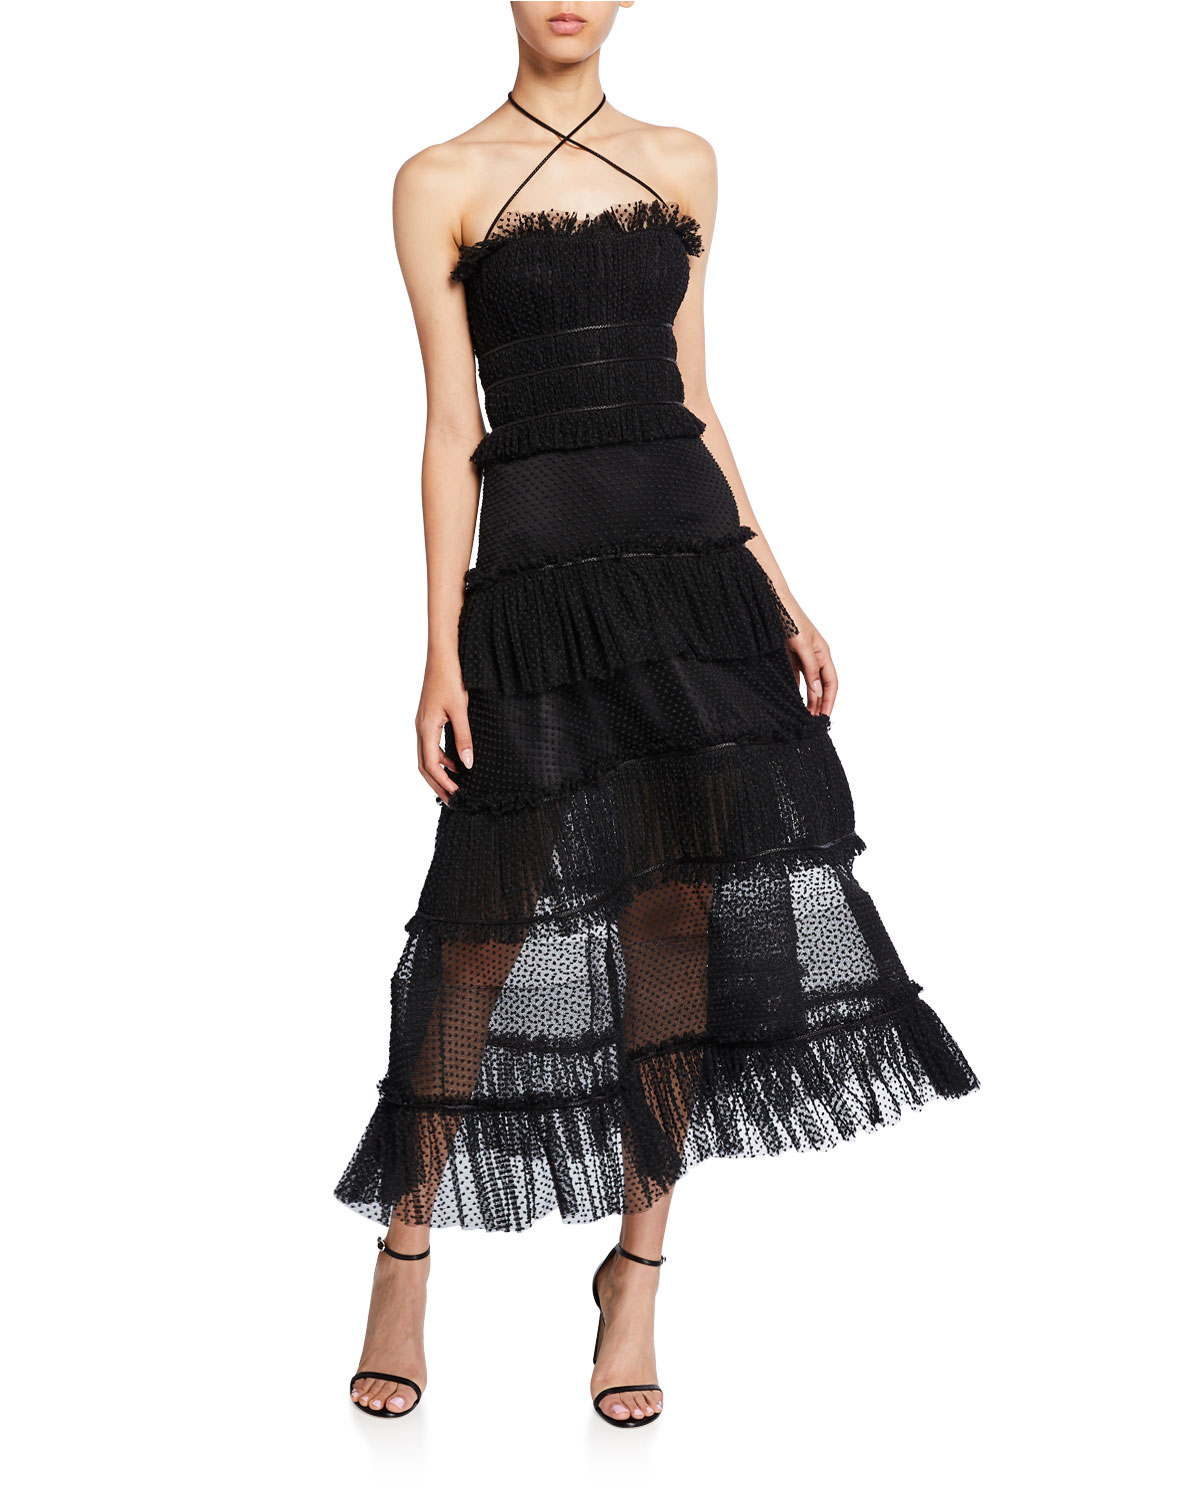 Alexis Dresses ANGELINA TIERED RUFFLE COCKTAIL DRESS